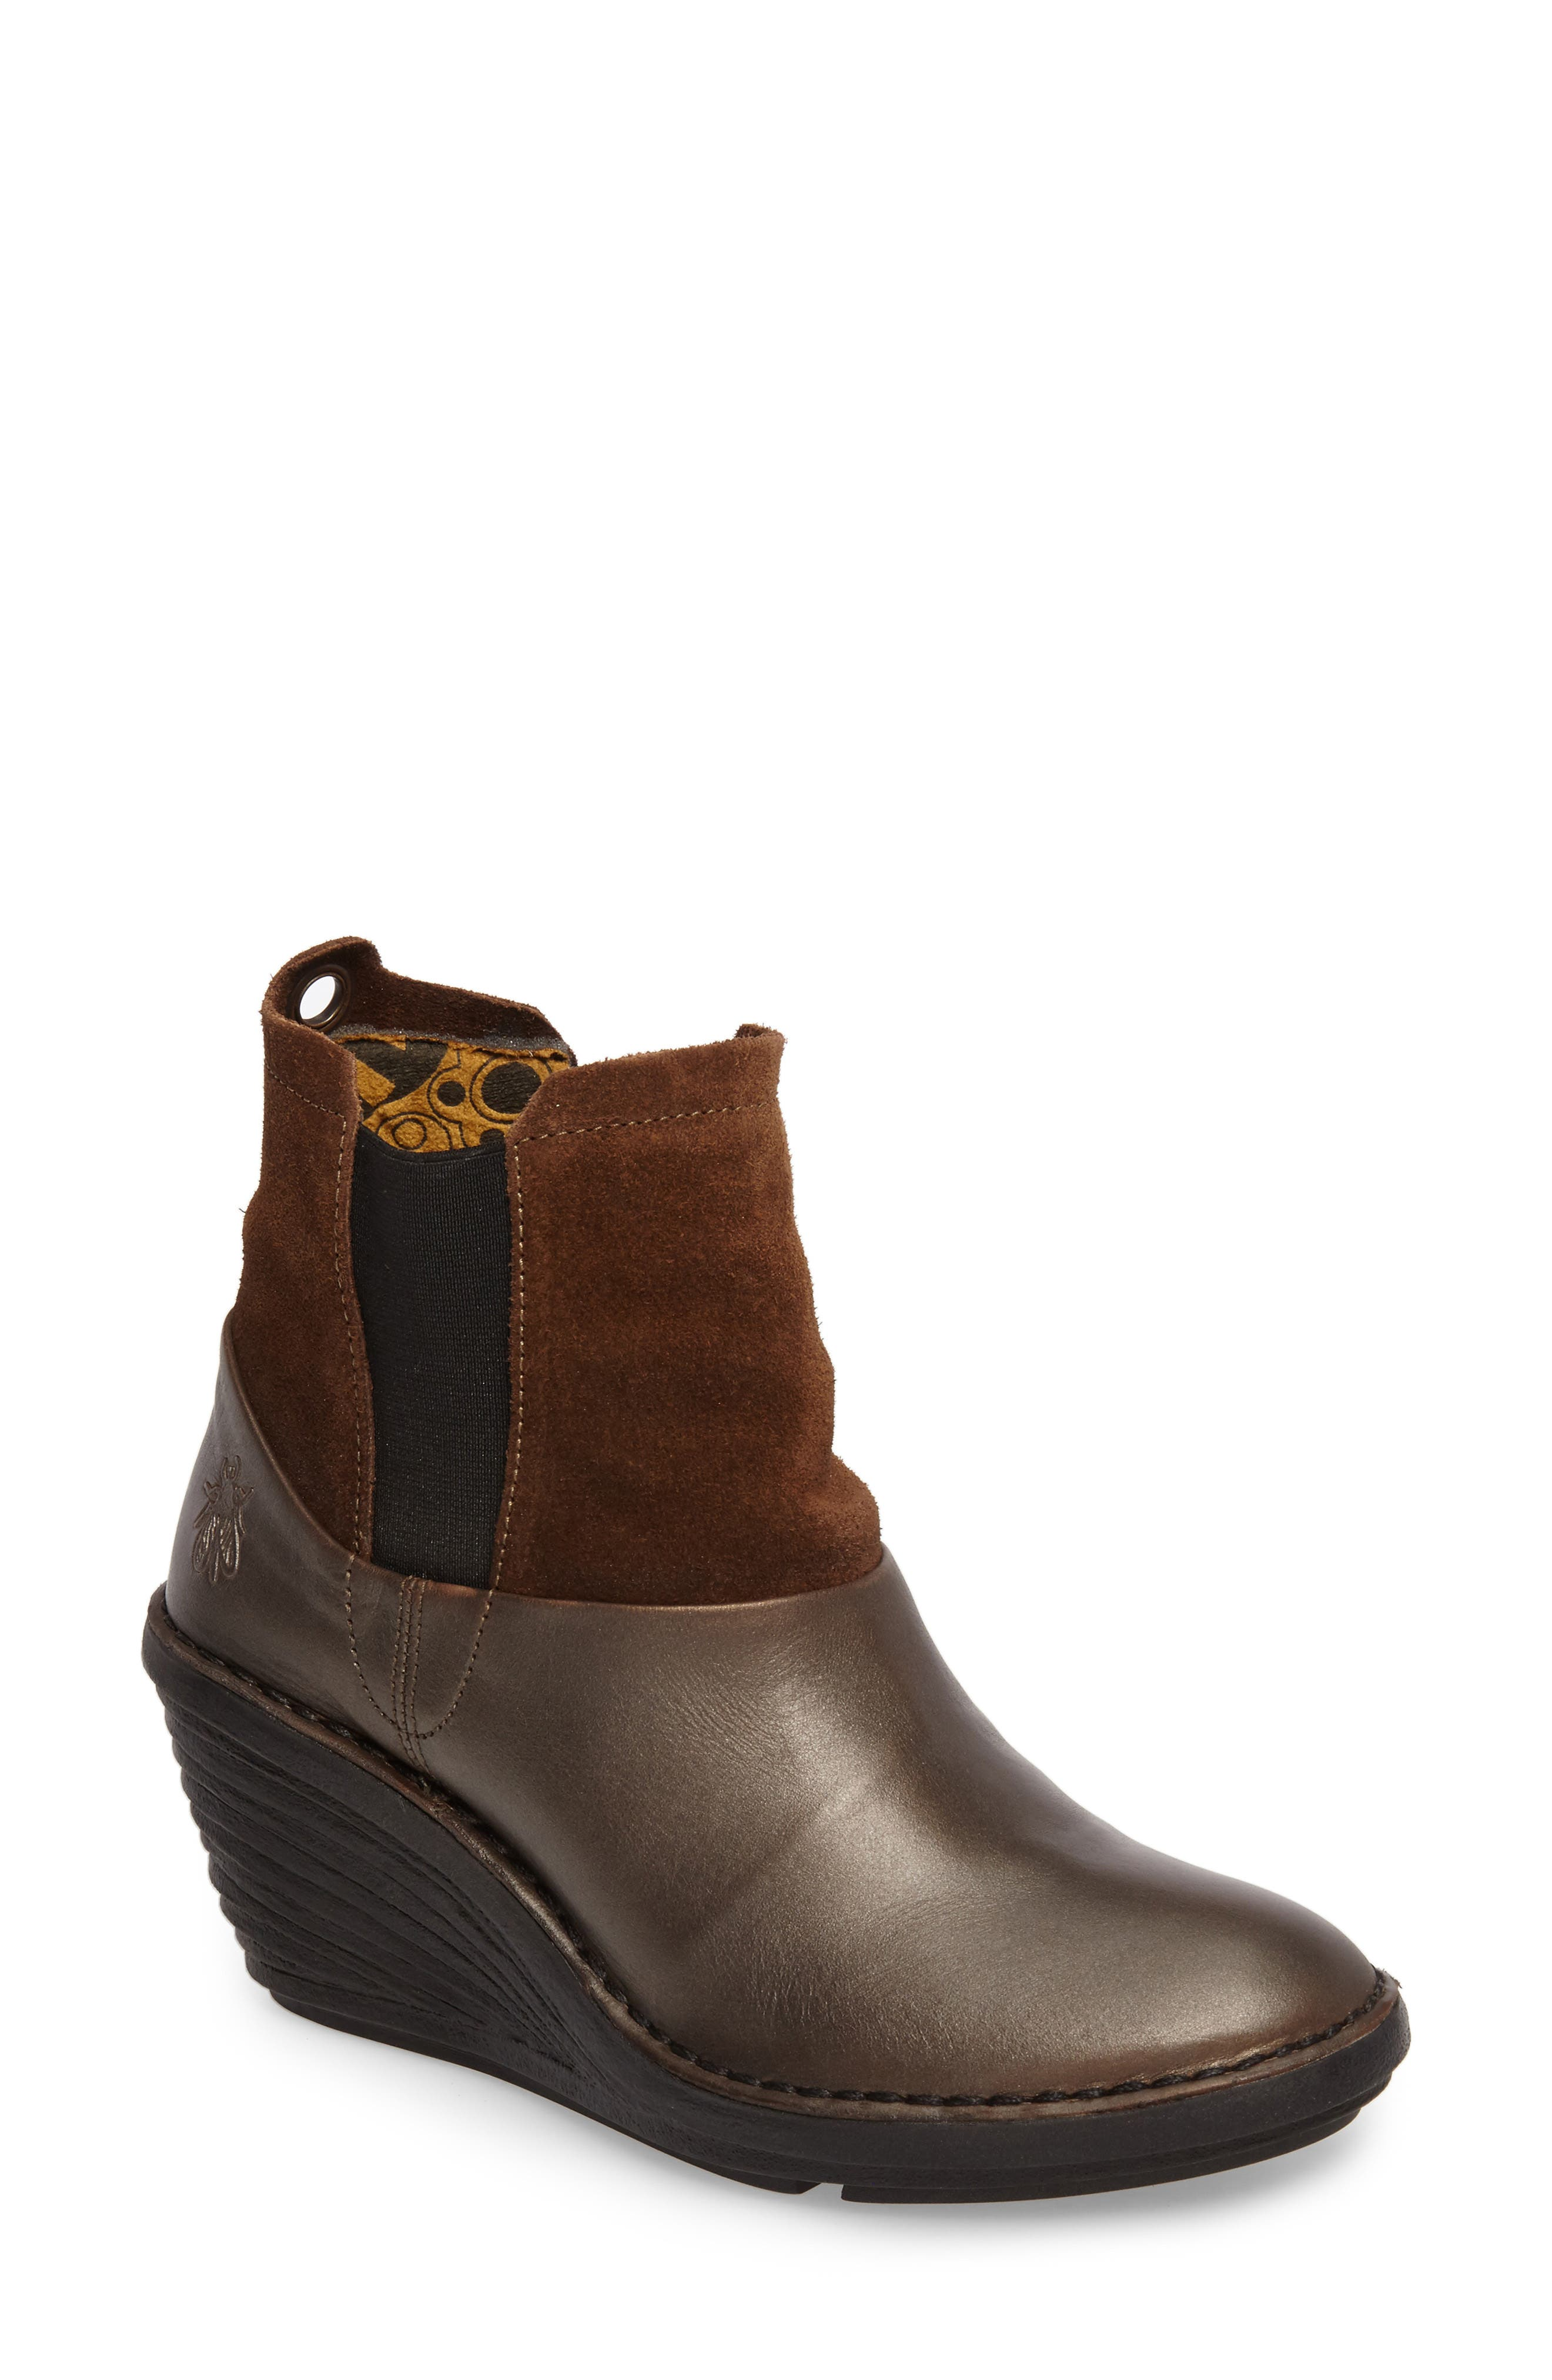 Sula Wedge Bootie,                         Main,                         color, Olive/ Camel Suede